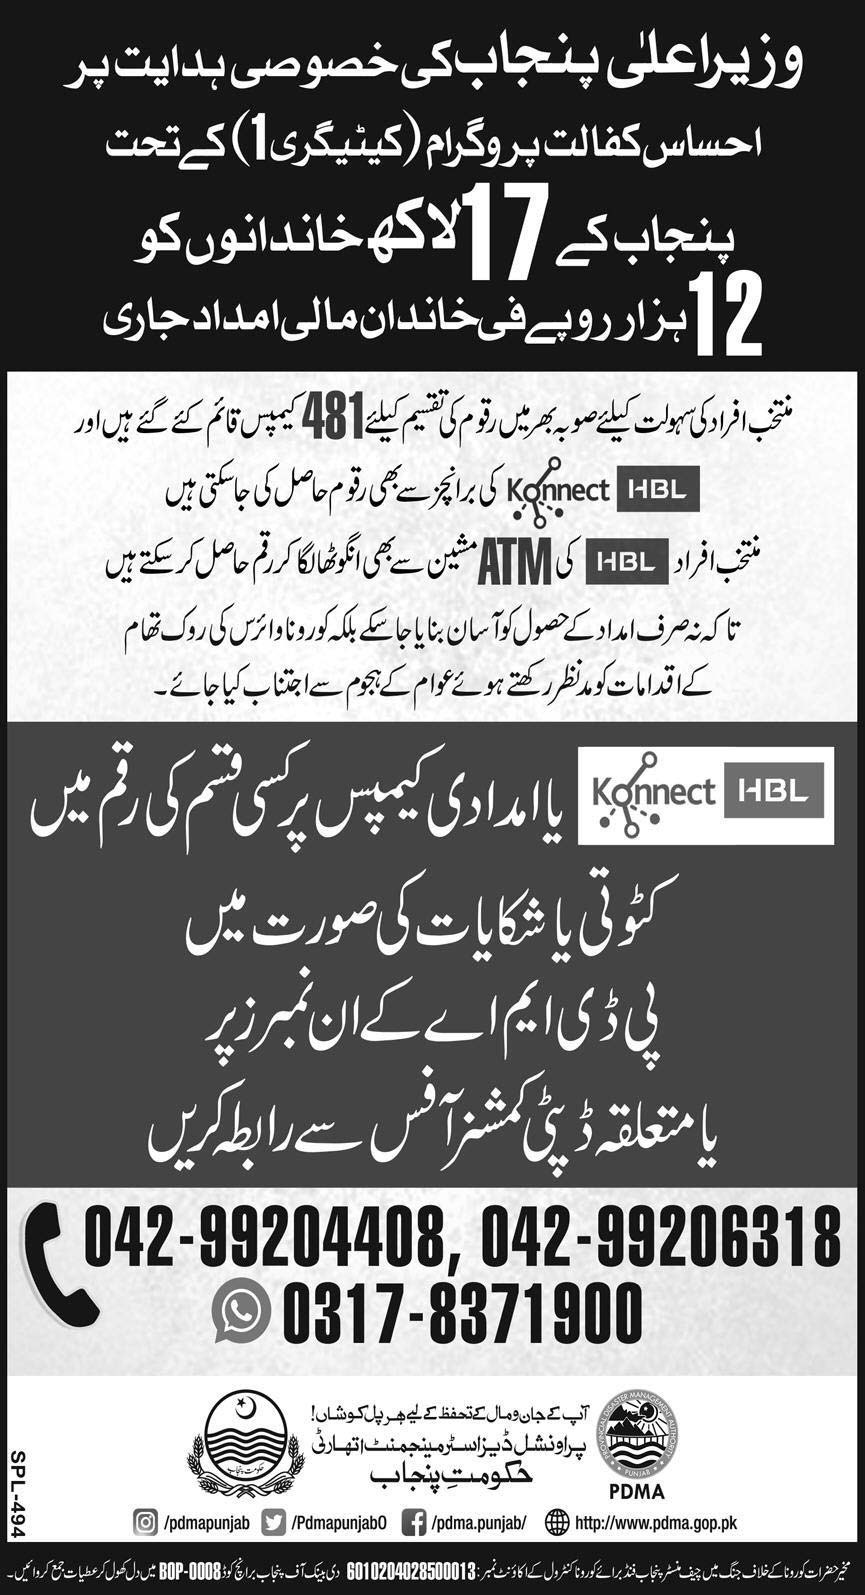 Ehsaas Kafalat Program 1st Category Where To Get Payment